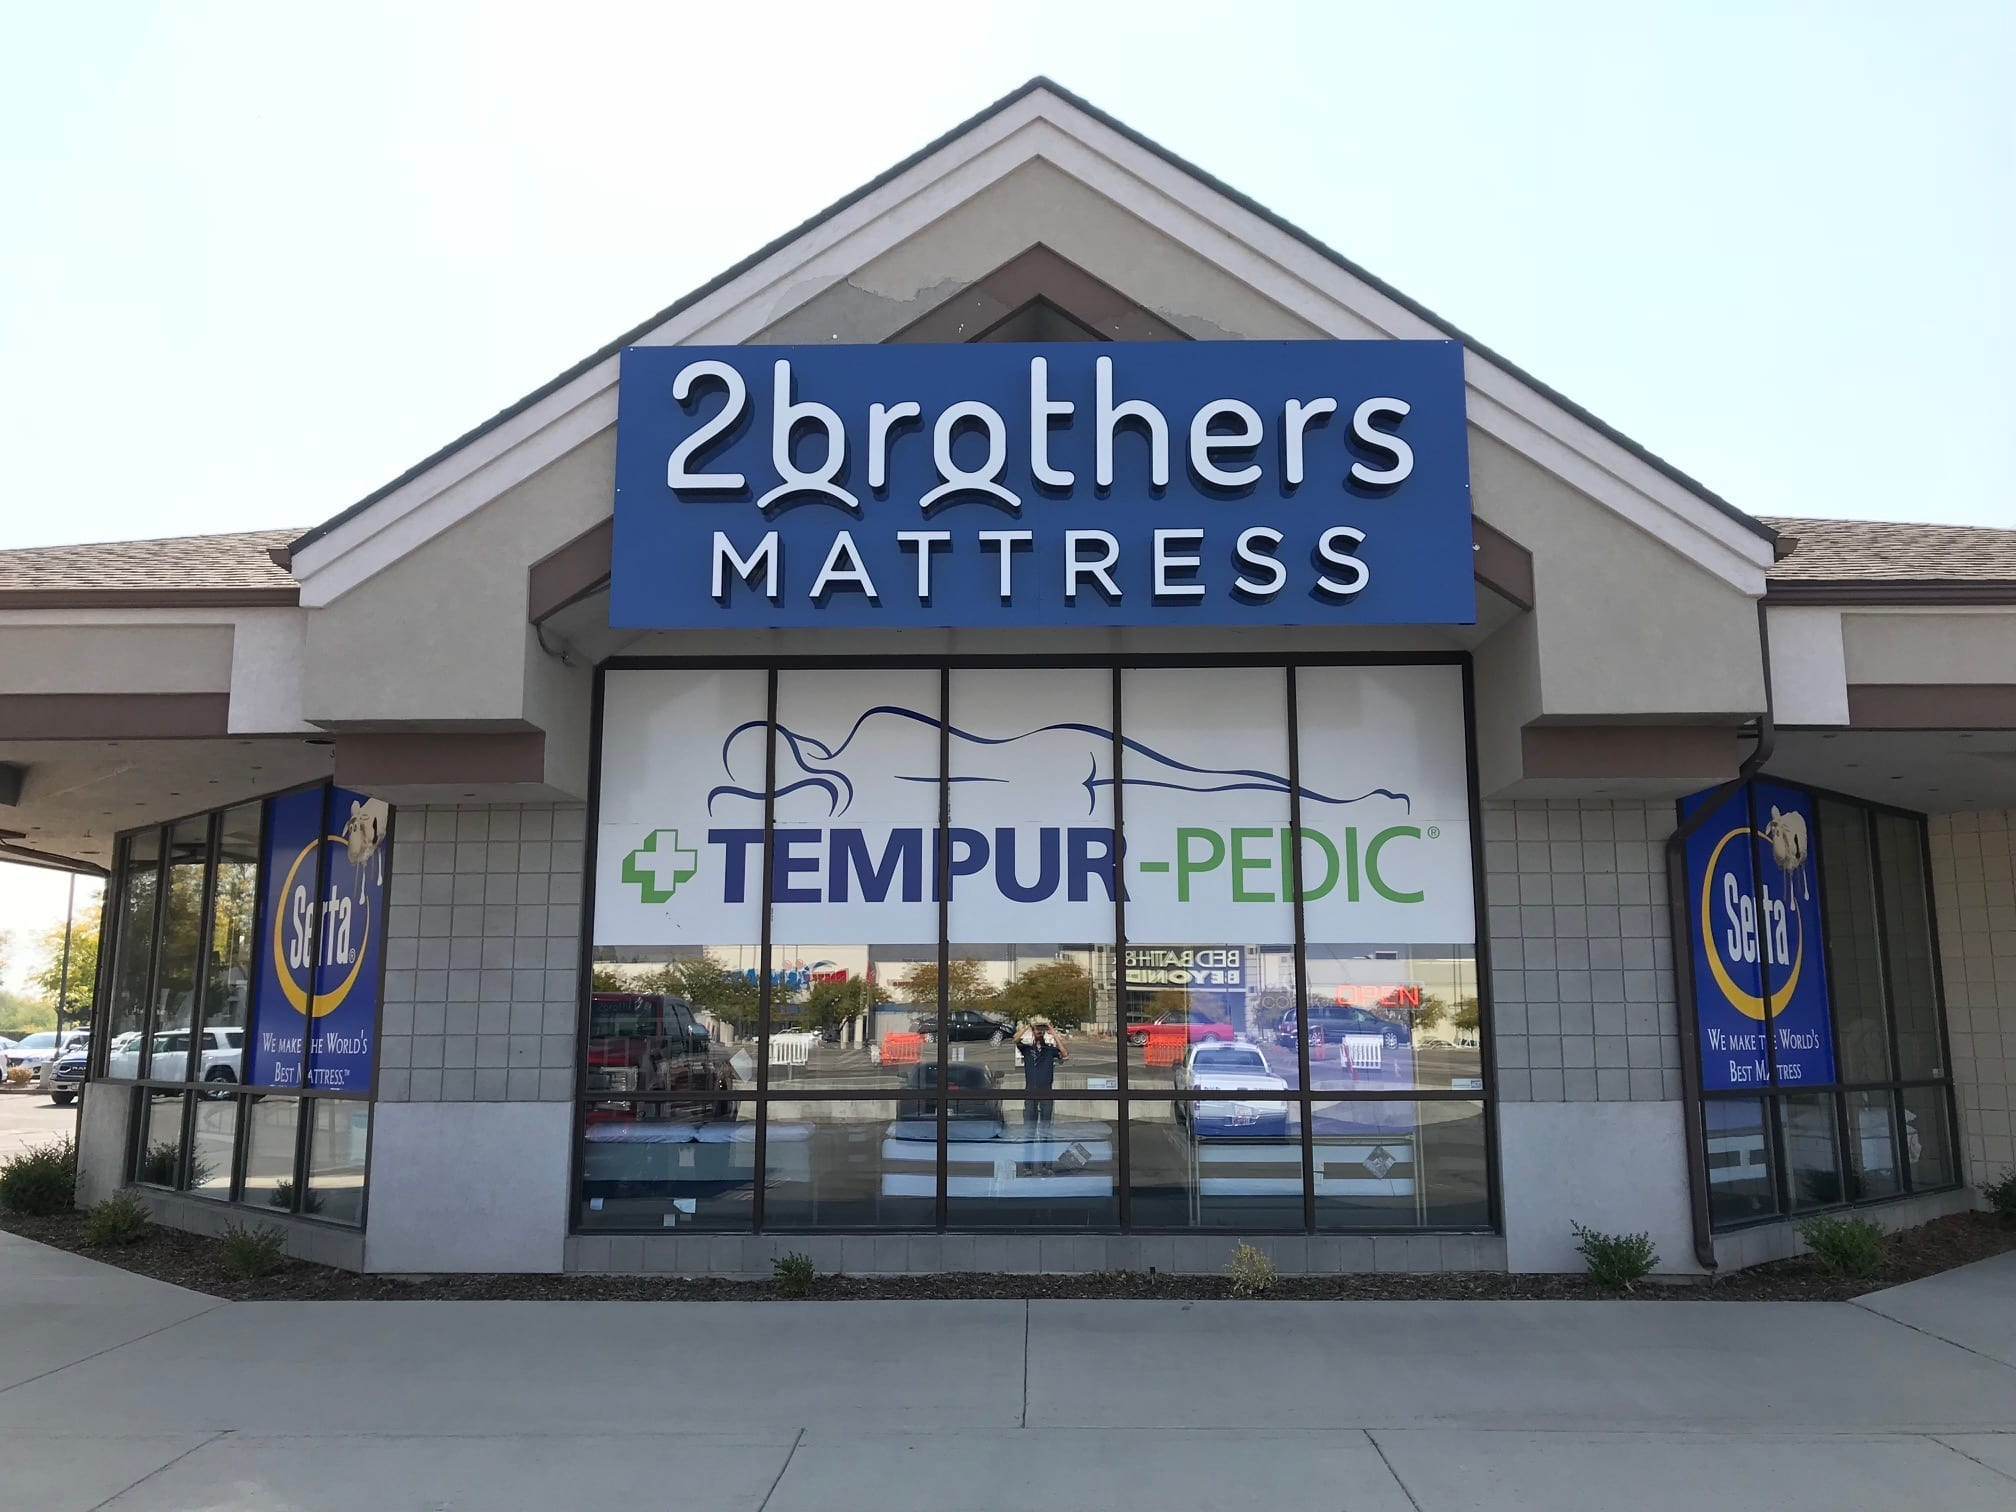 Tempurpedic Mattress For Sale In Orem Ut 2 Brothers Mattress